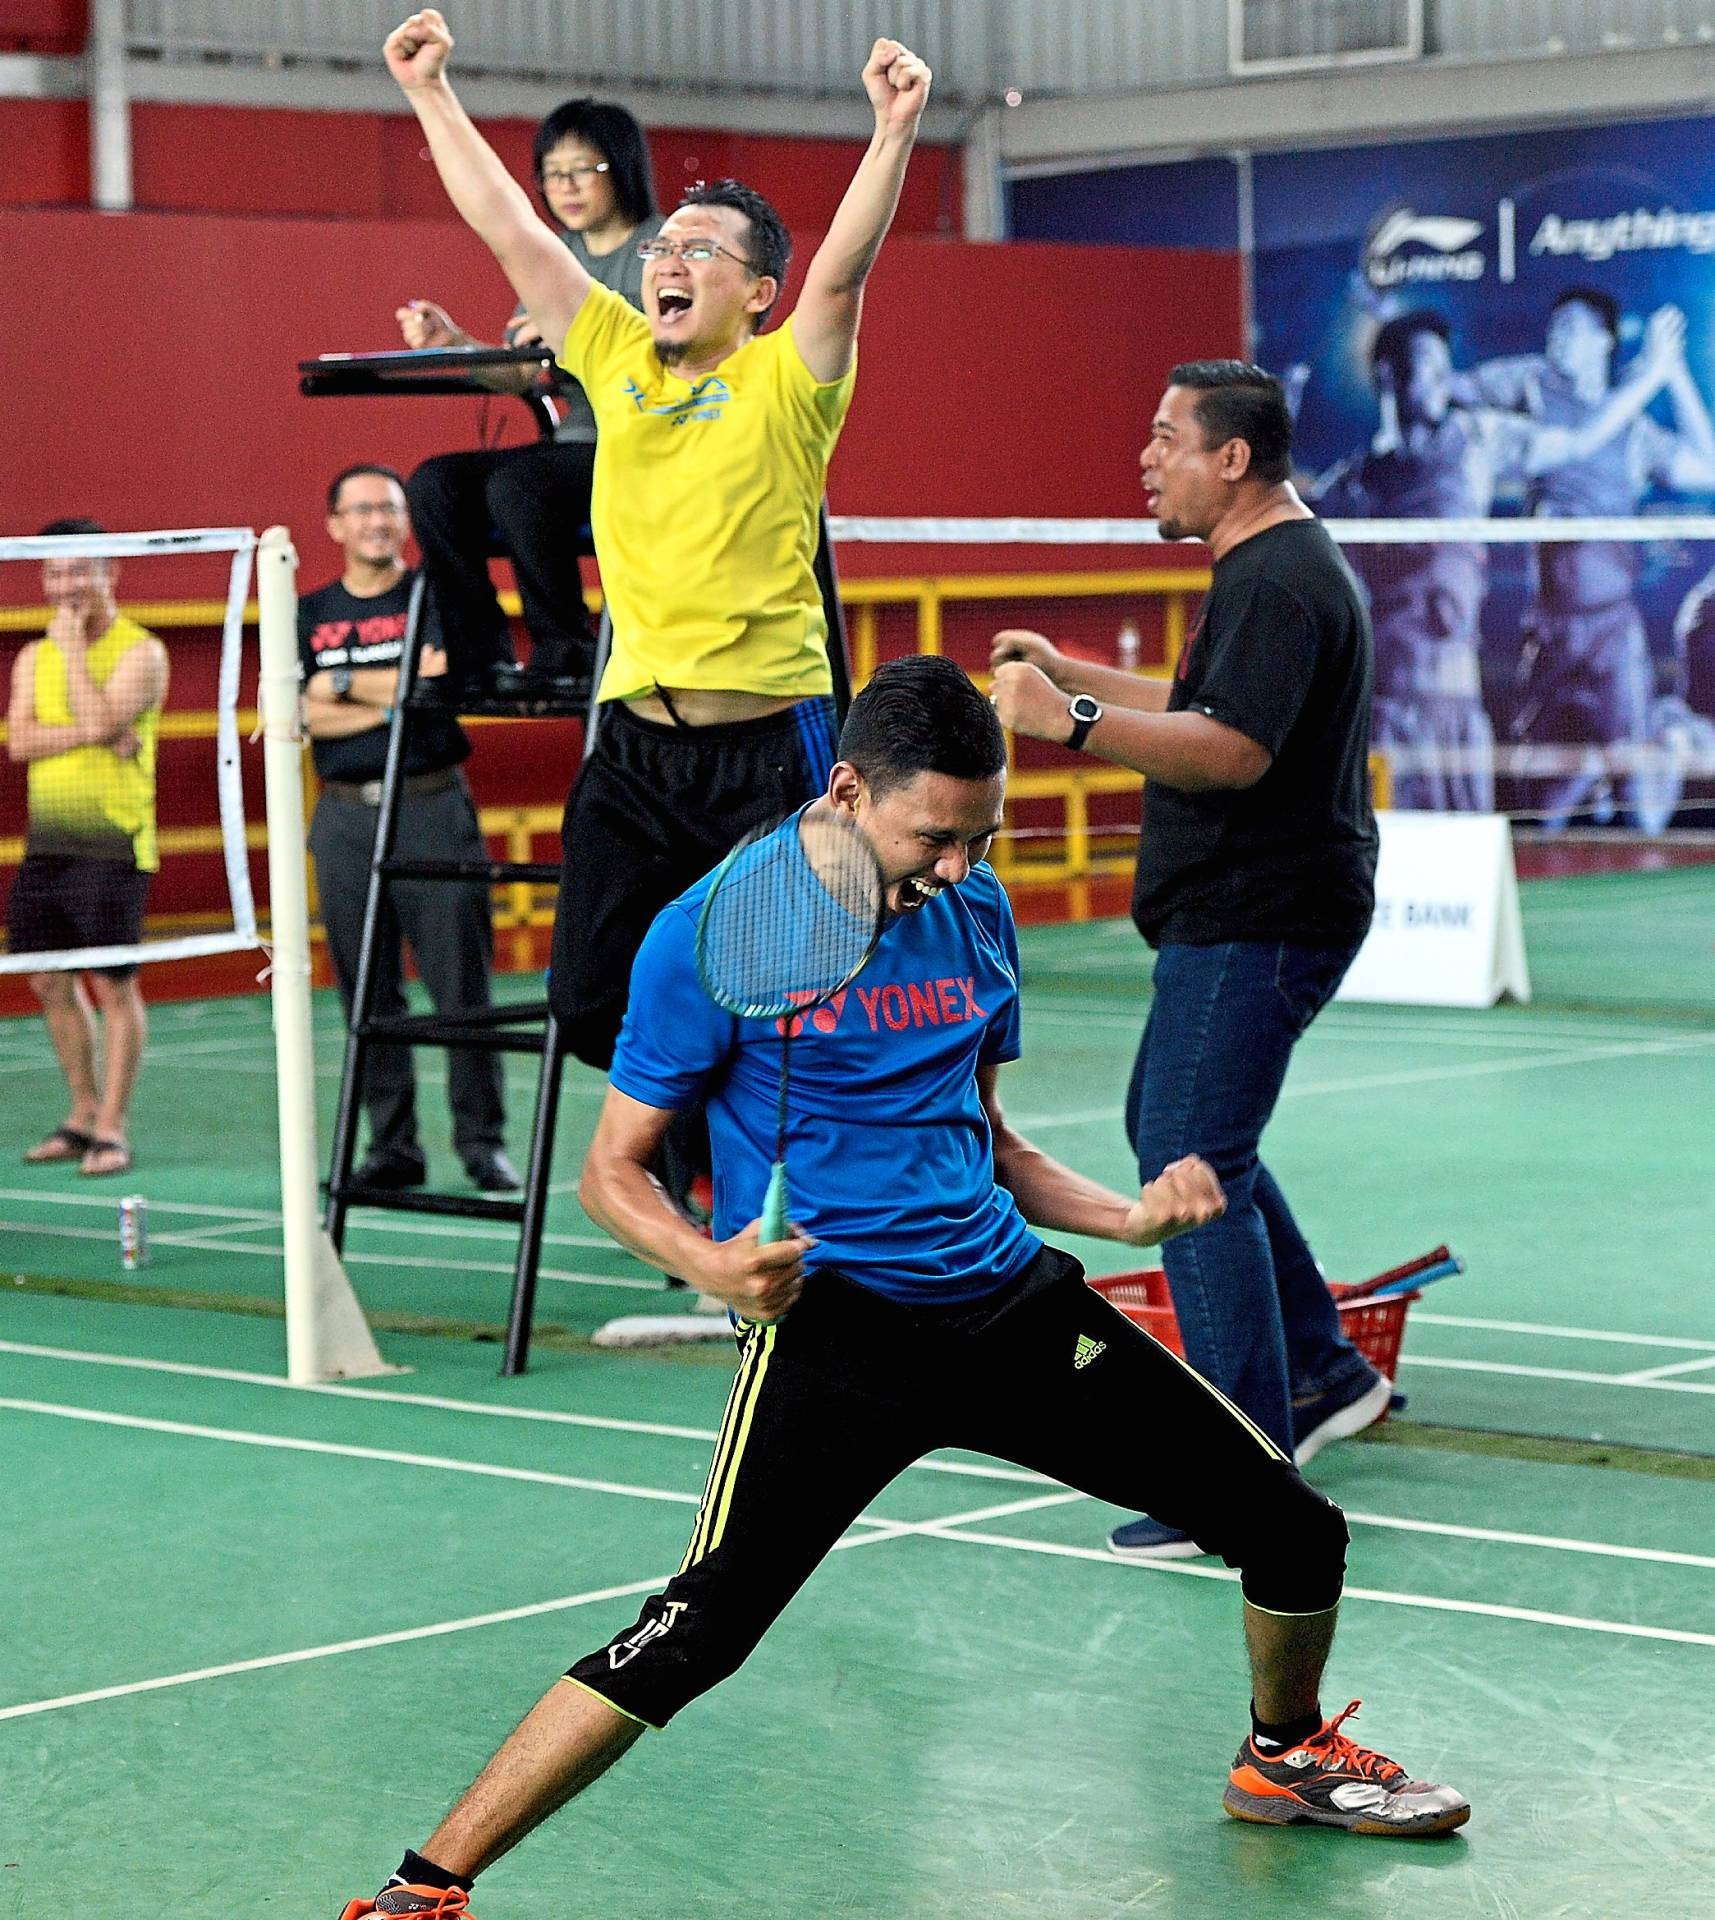 Bank Rakyat players celebrating after their victory in the badminton doubles against Alliance Bank Malaysia Bhd.